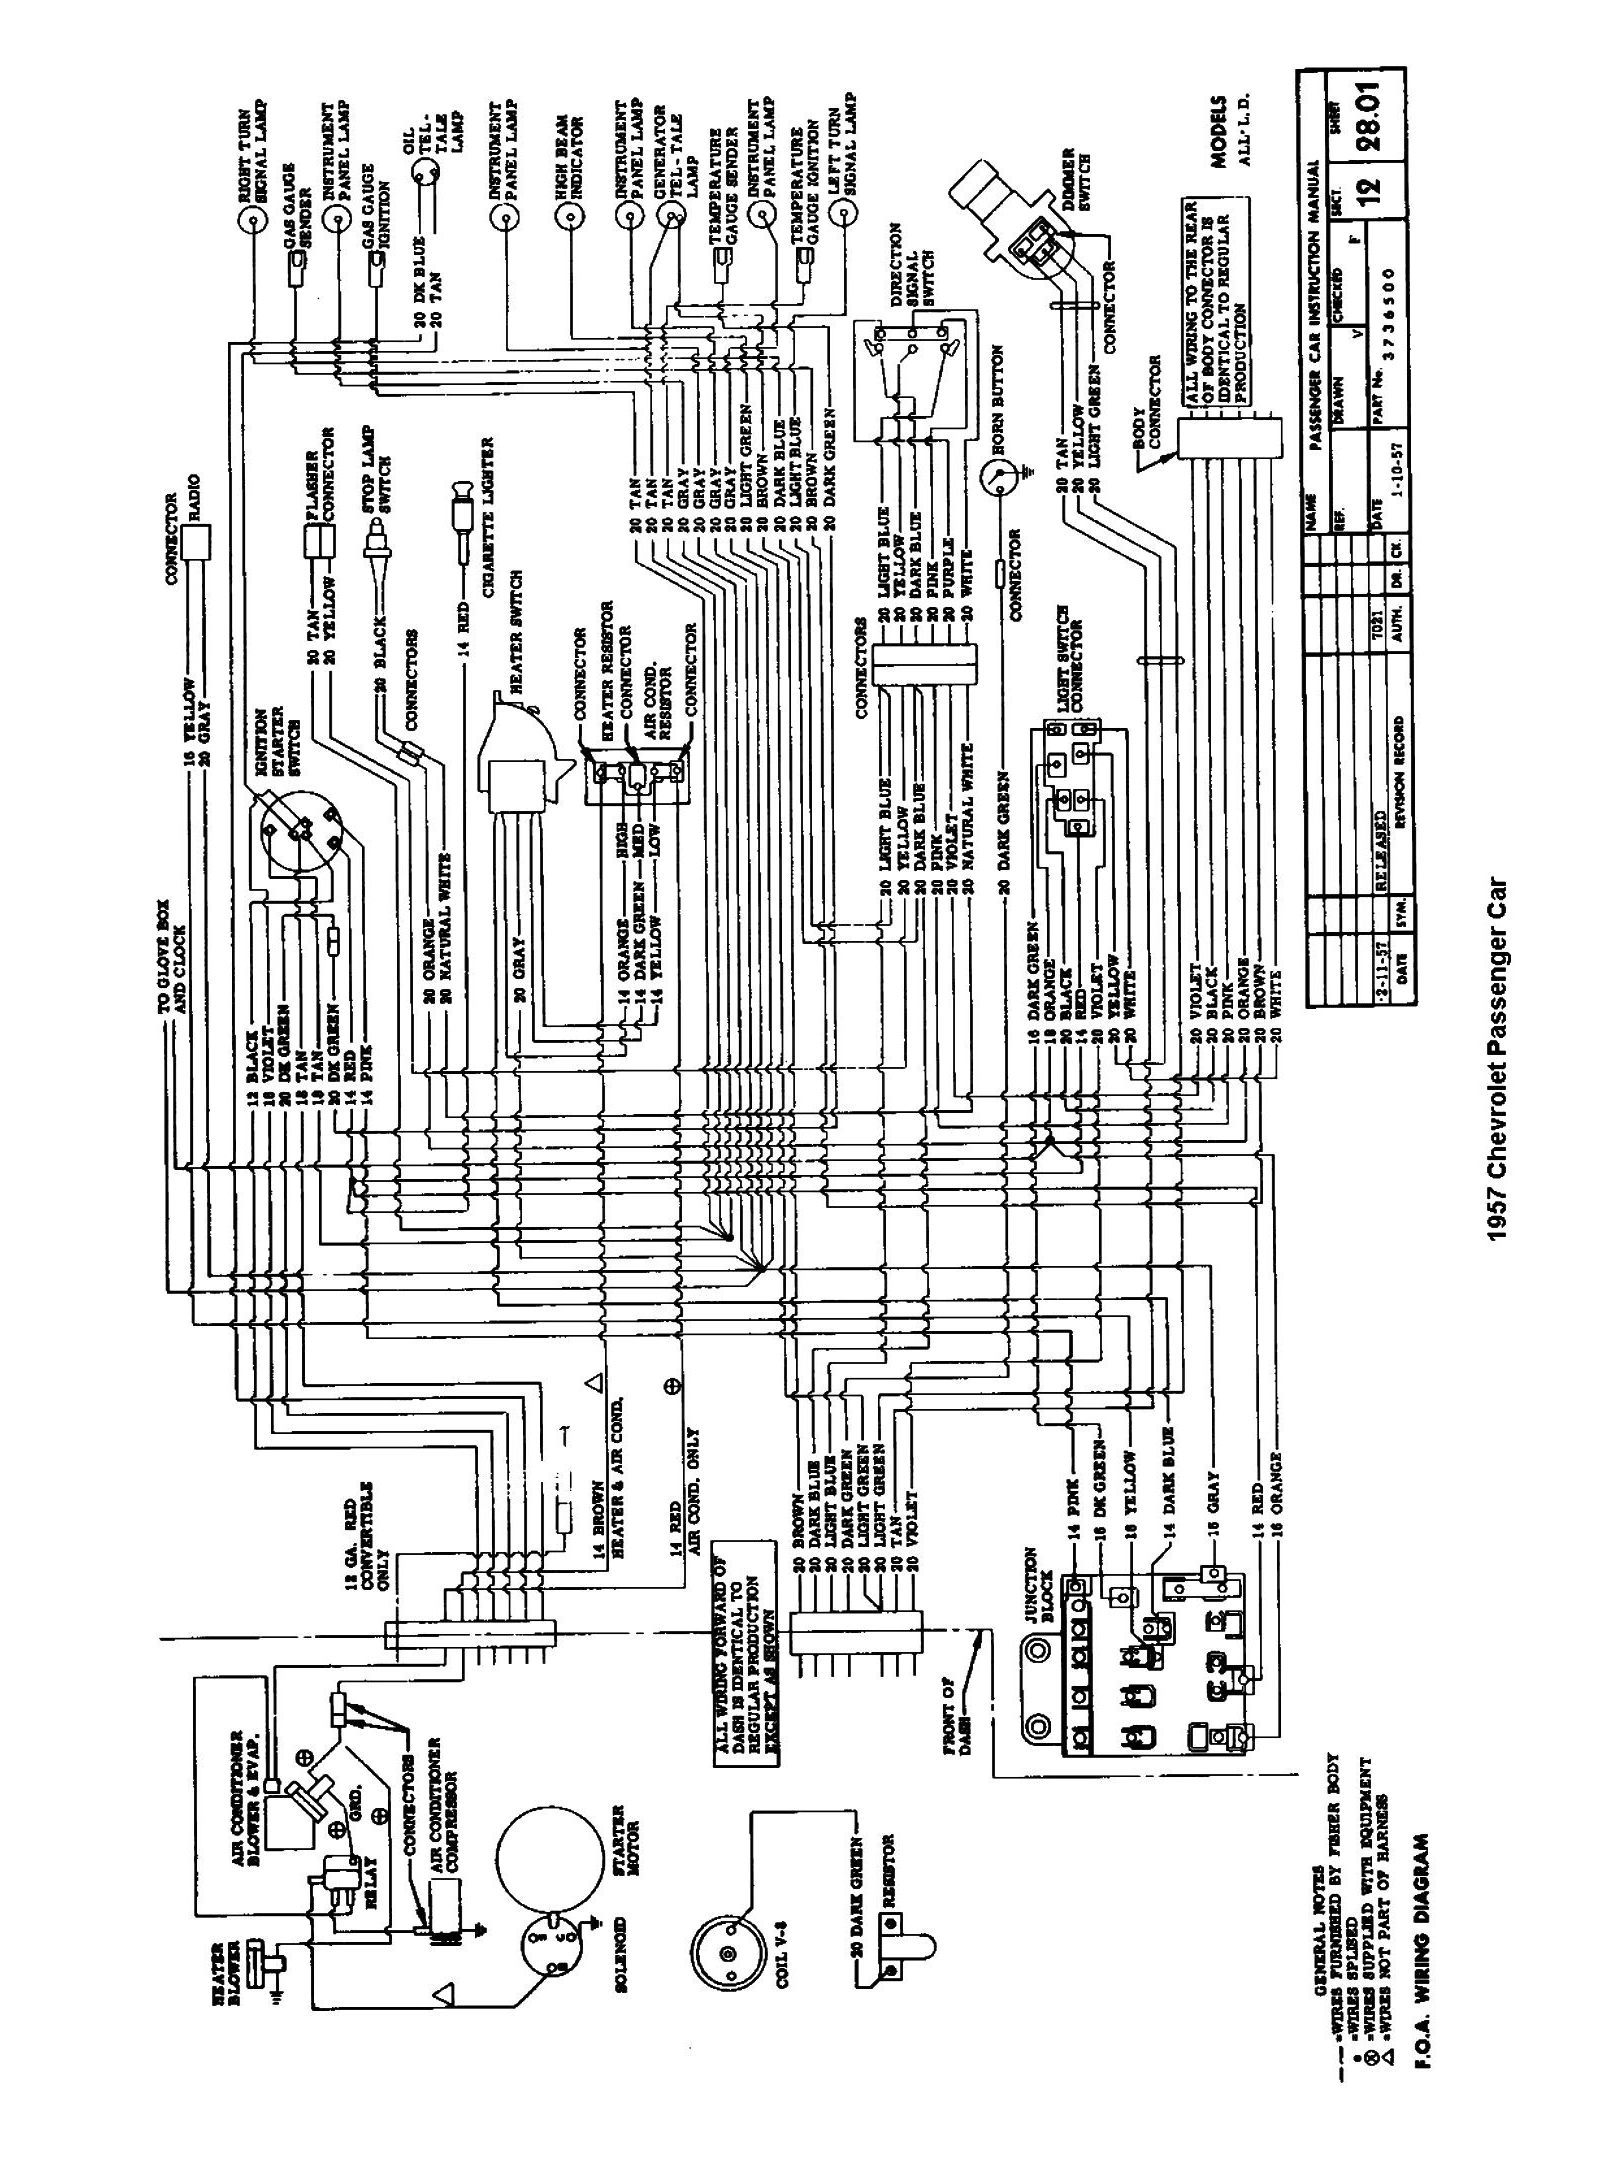 57car2 chevy wiring diagrams 1957 chevy wiring diagram at mr168.co